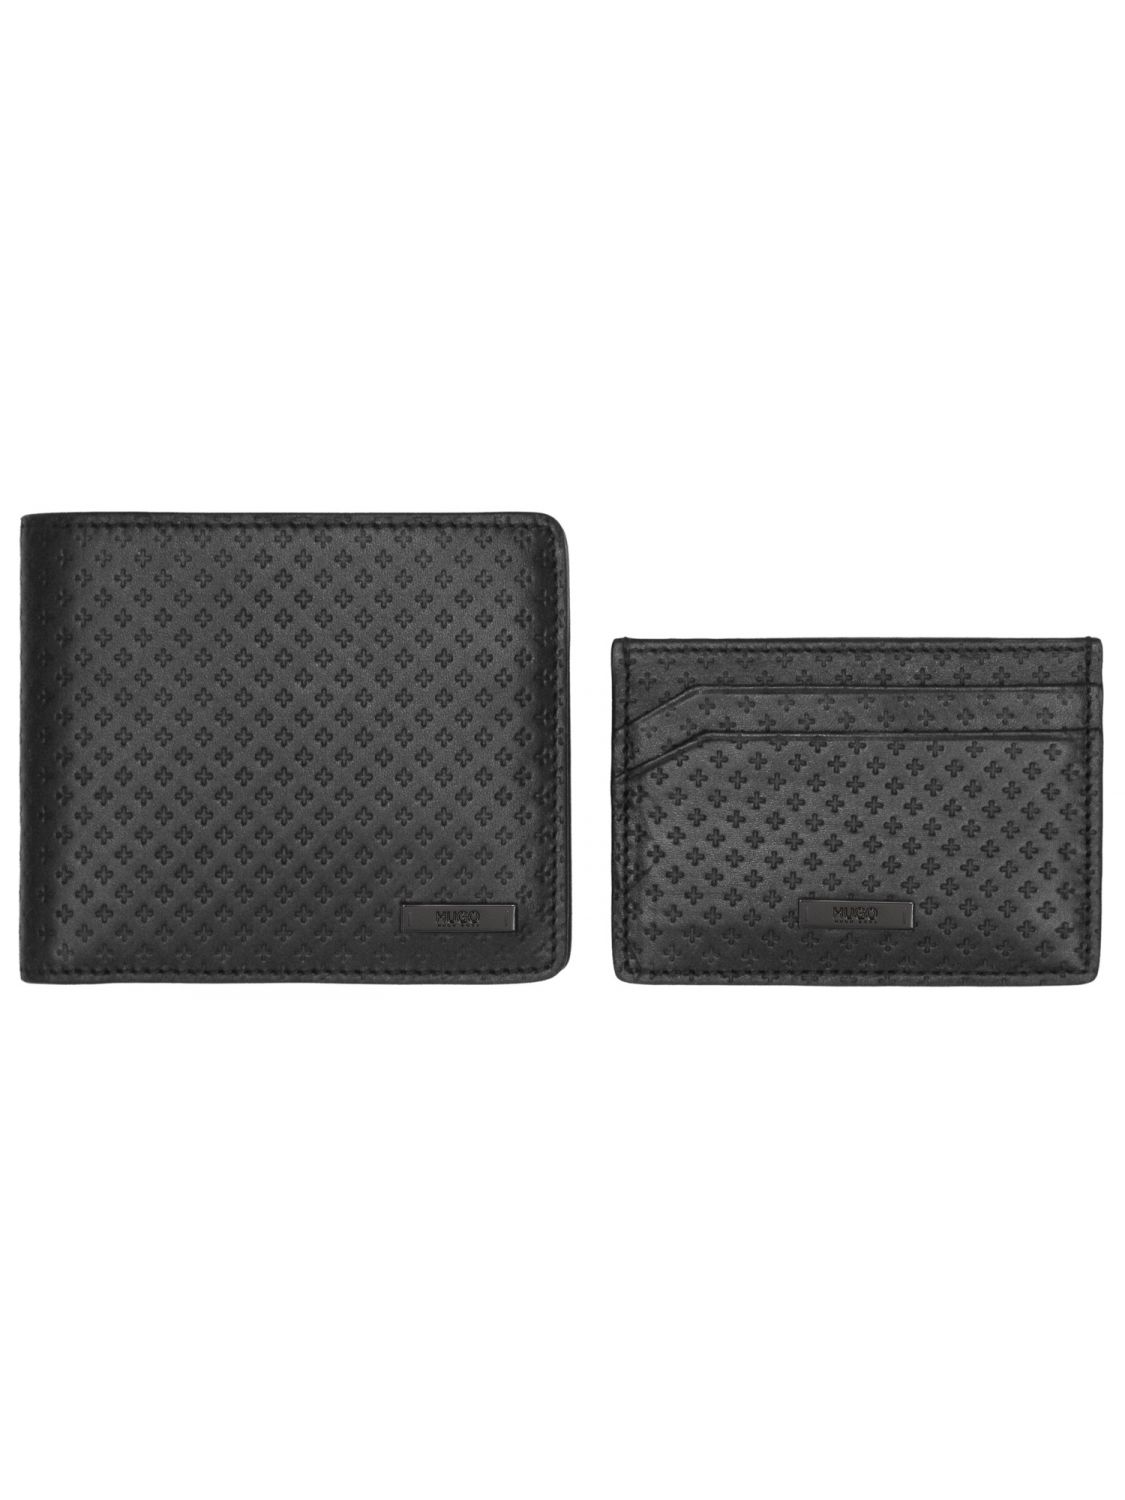 HUGO 50328001 Mens Wallet Set Black • uhrcenter 3b580fa984